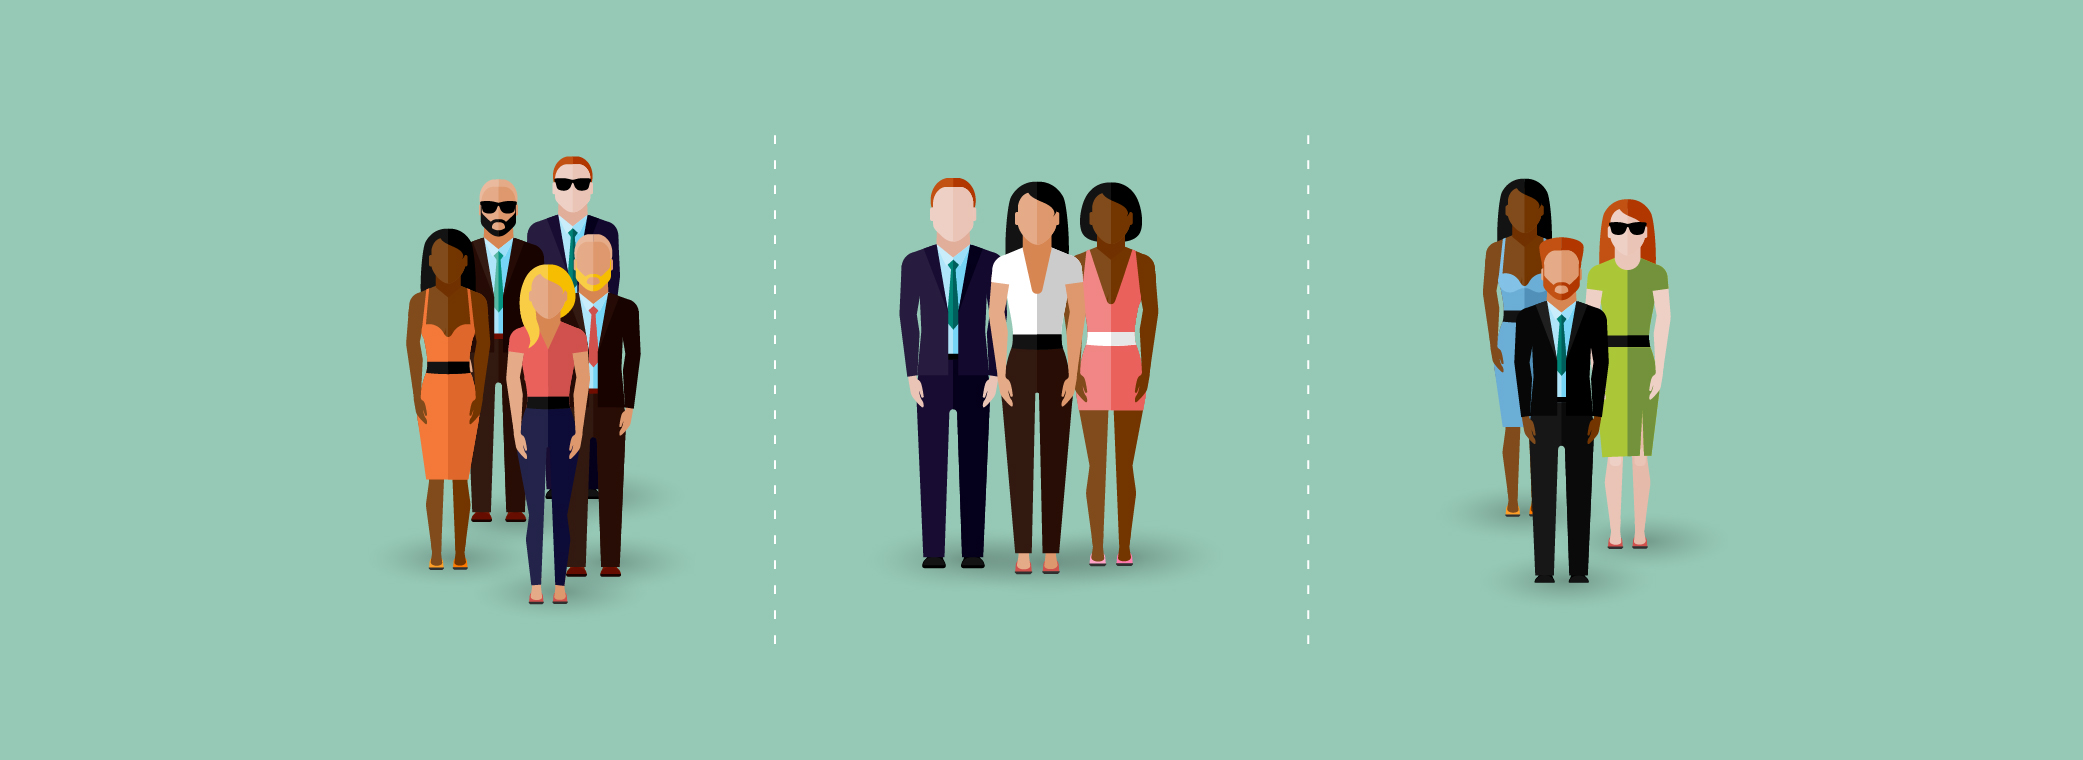 Demographics Should Be Integrated In Every Marketing Strategy